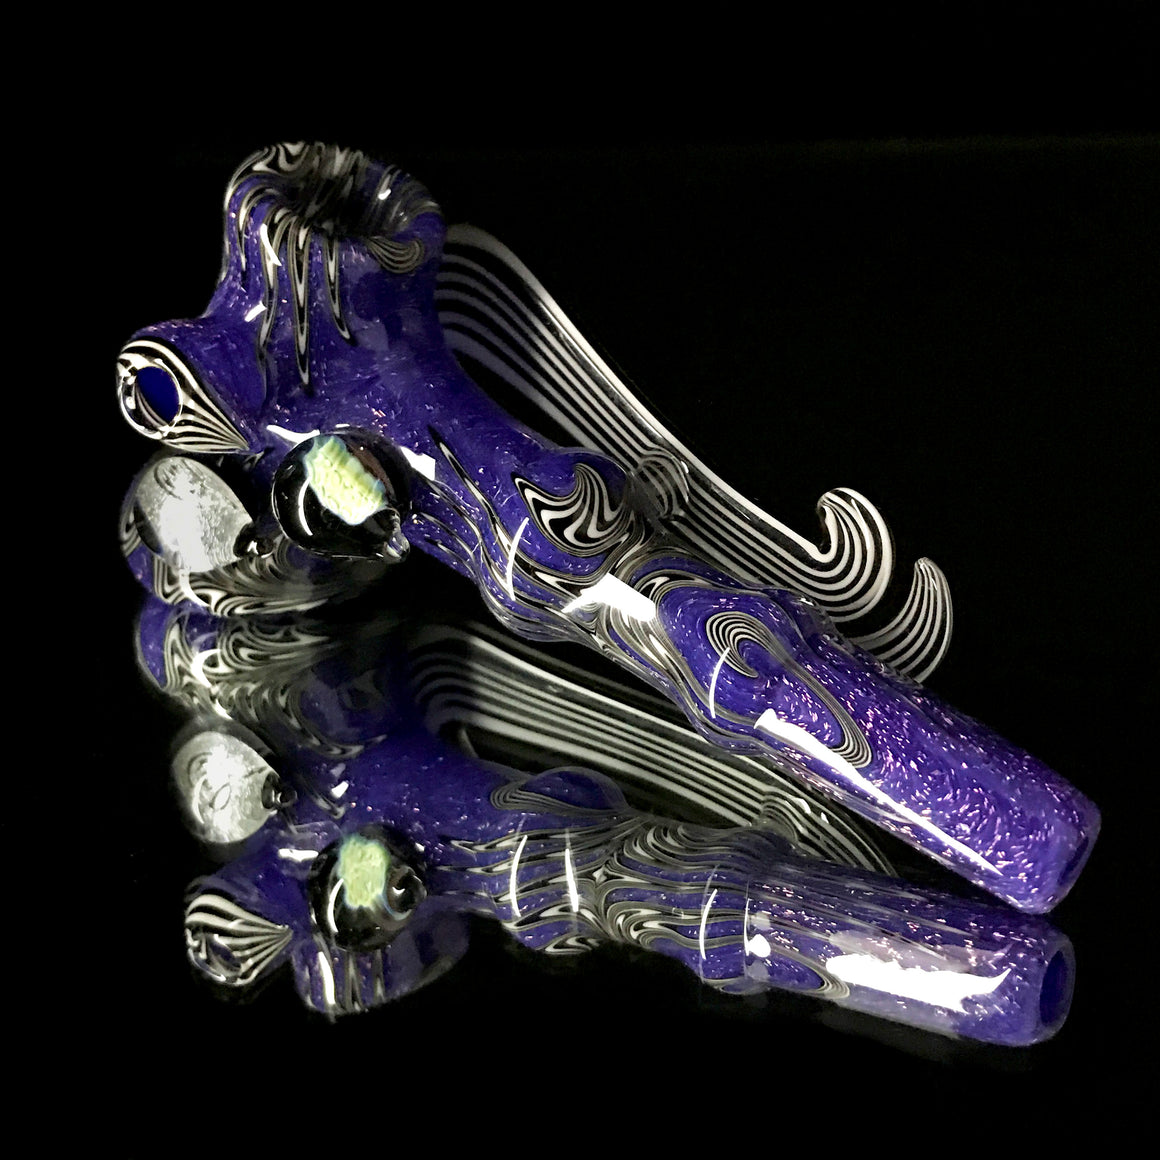 Purple Dichro Jailbird Hammer w/ Cane and Marble Attachments